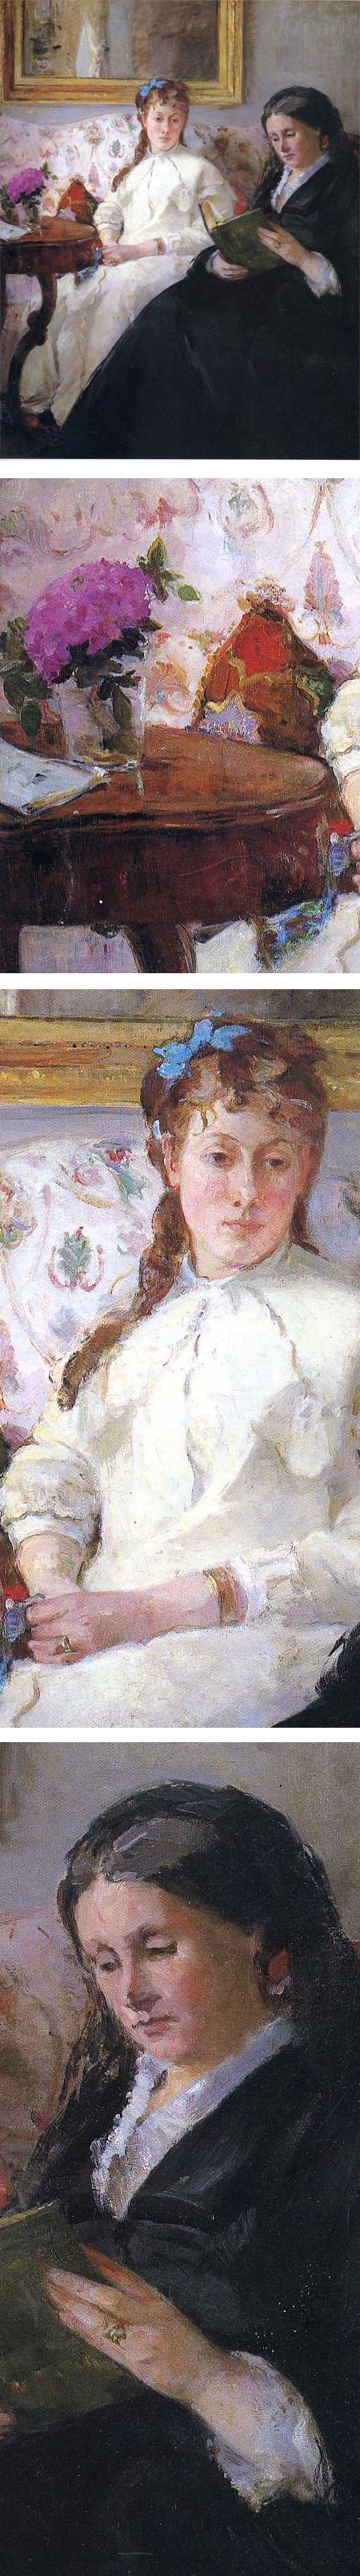 Portrait of the Artist's Mother and Sister, Berthe Morisot